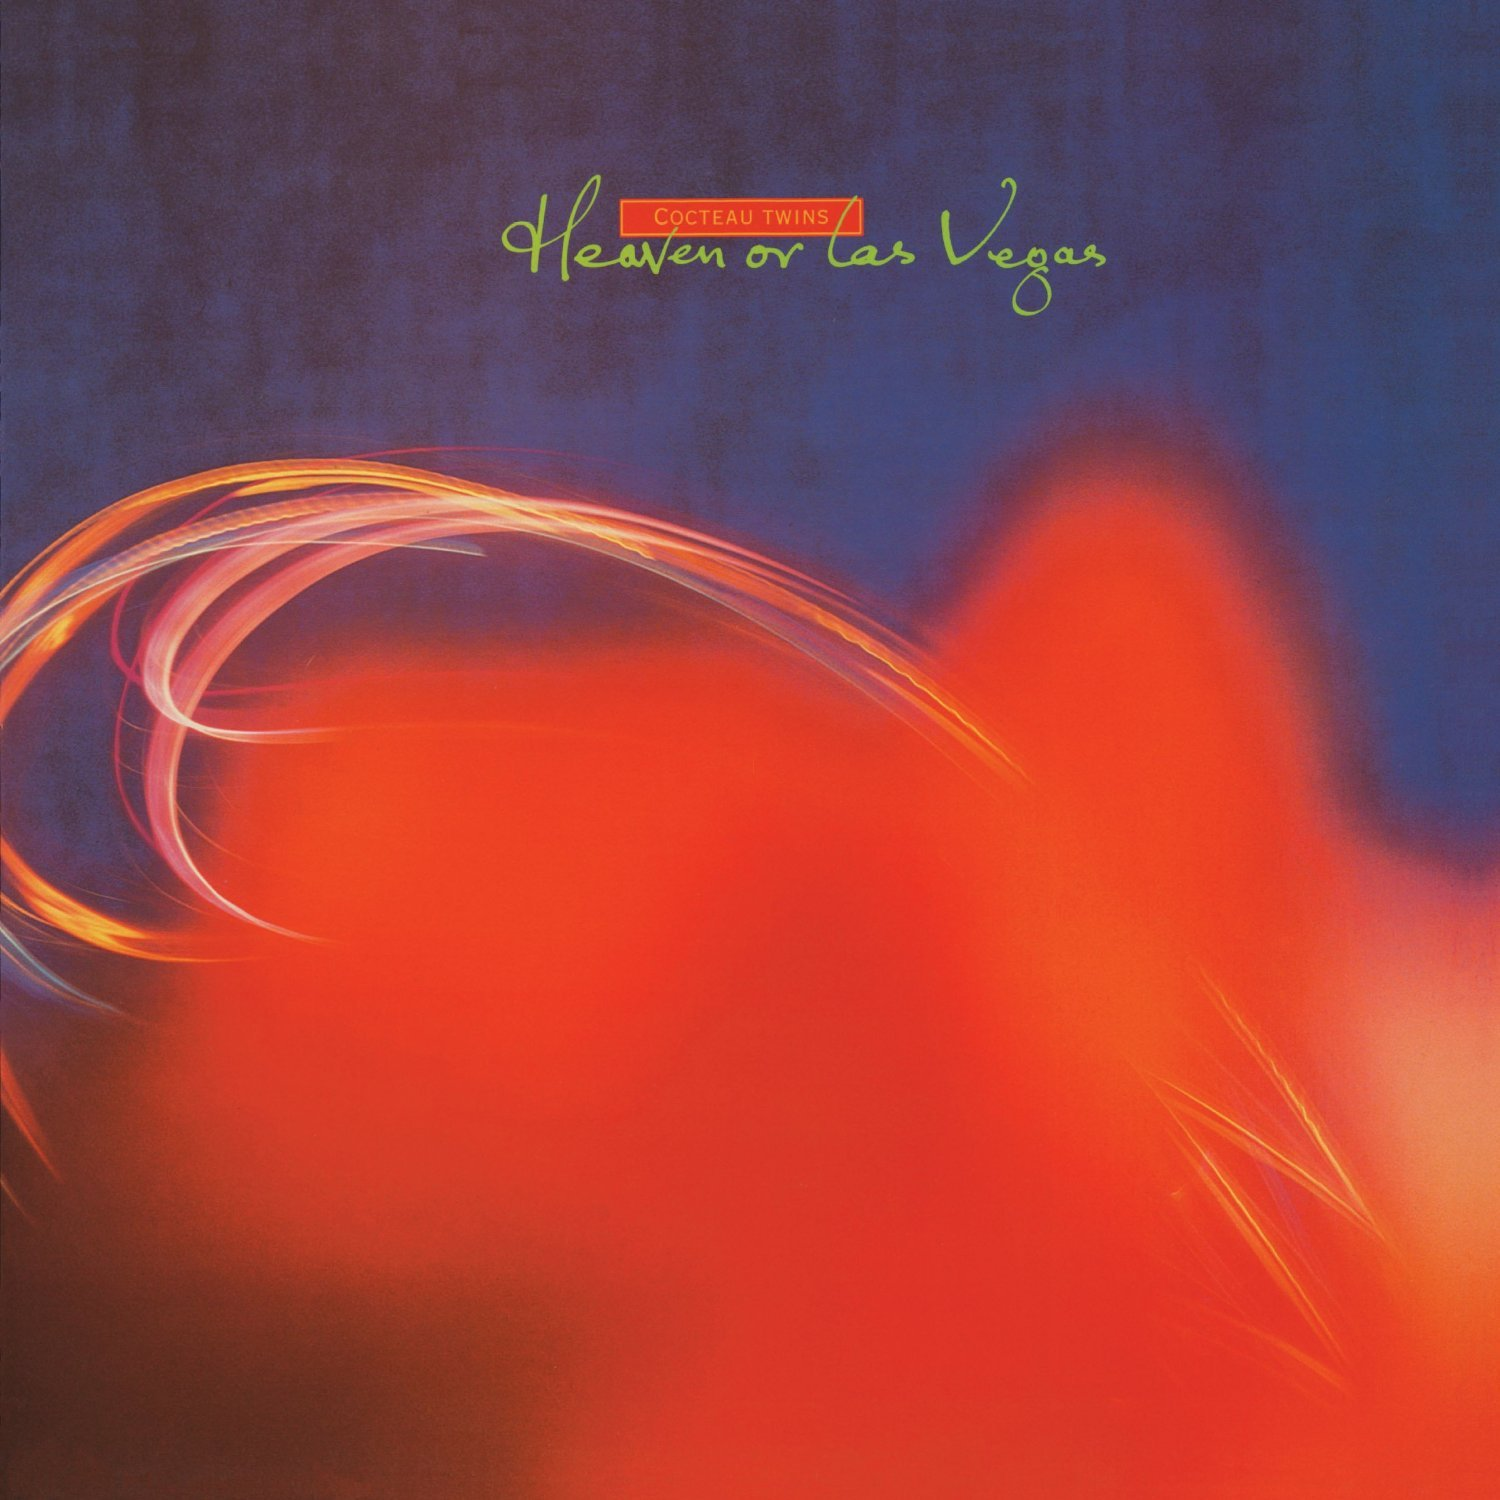 COCTEAU TWINS Heaven or Las Vegas album cover